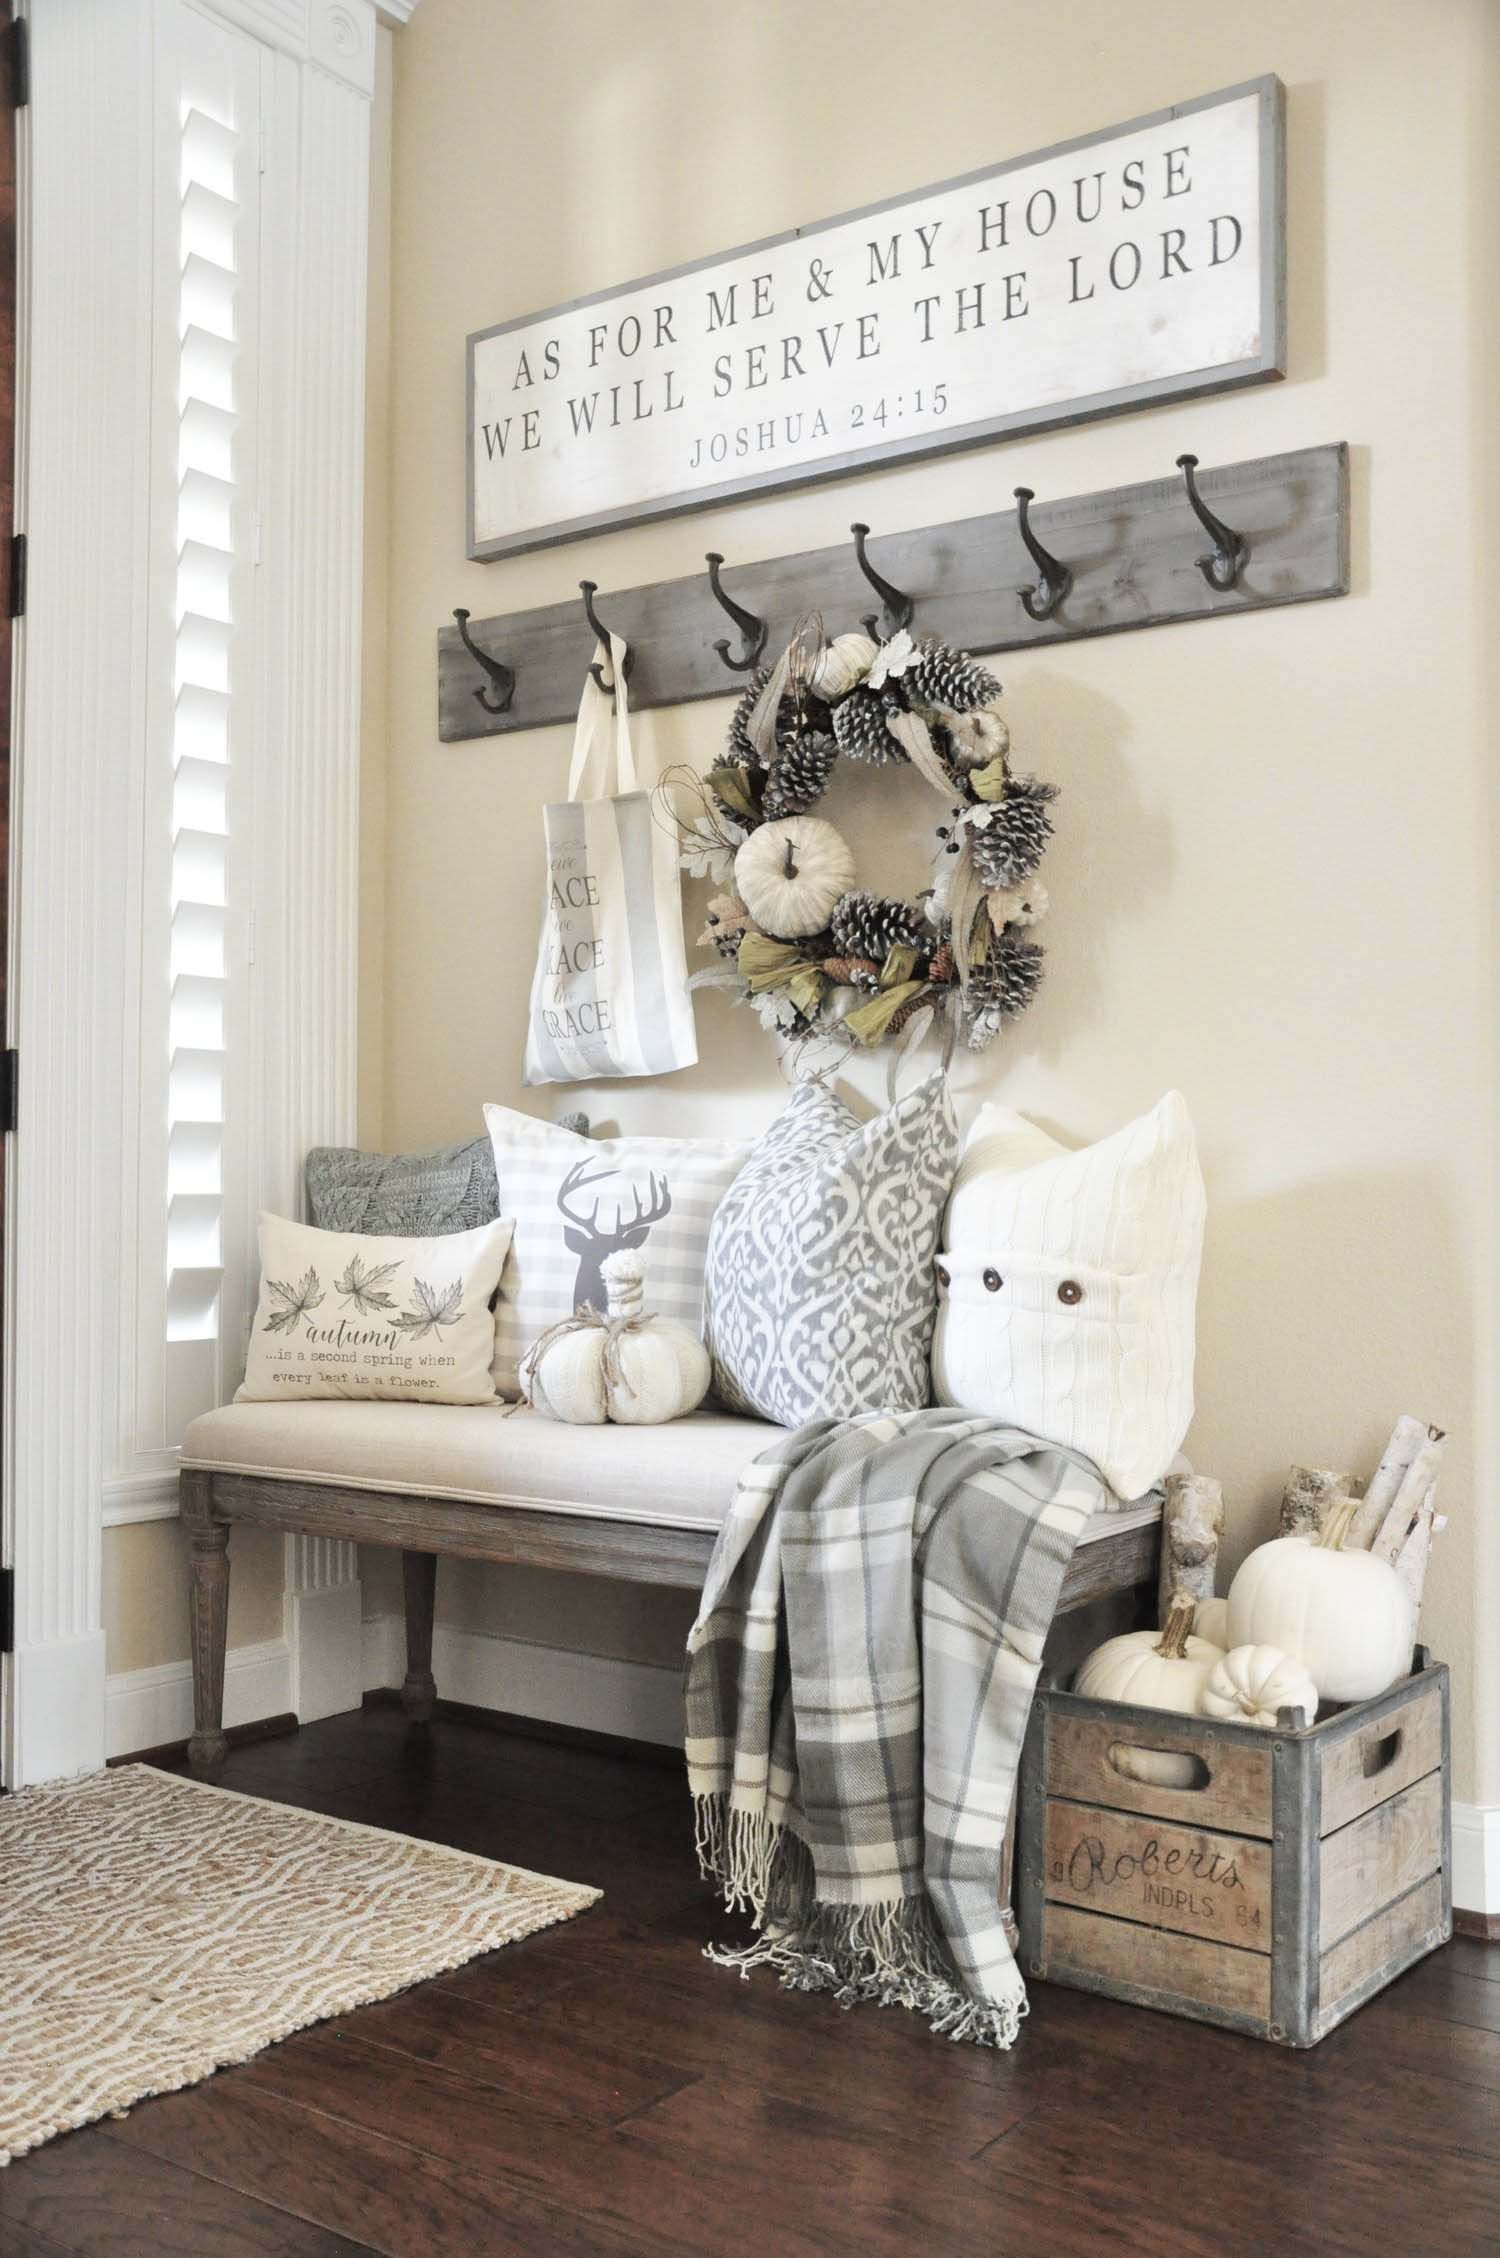 28 Welcoming fall-inspired entryway decorating ideas | Pinterest ...